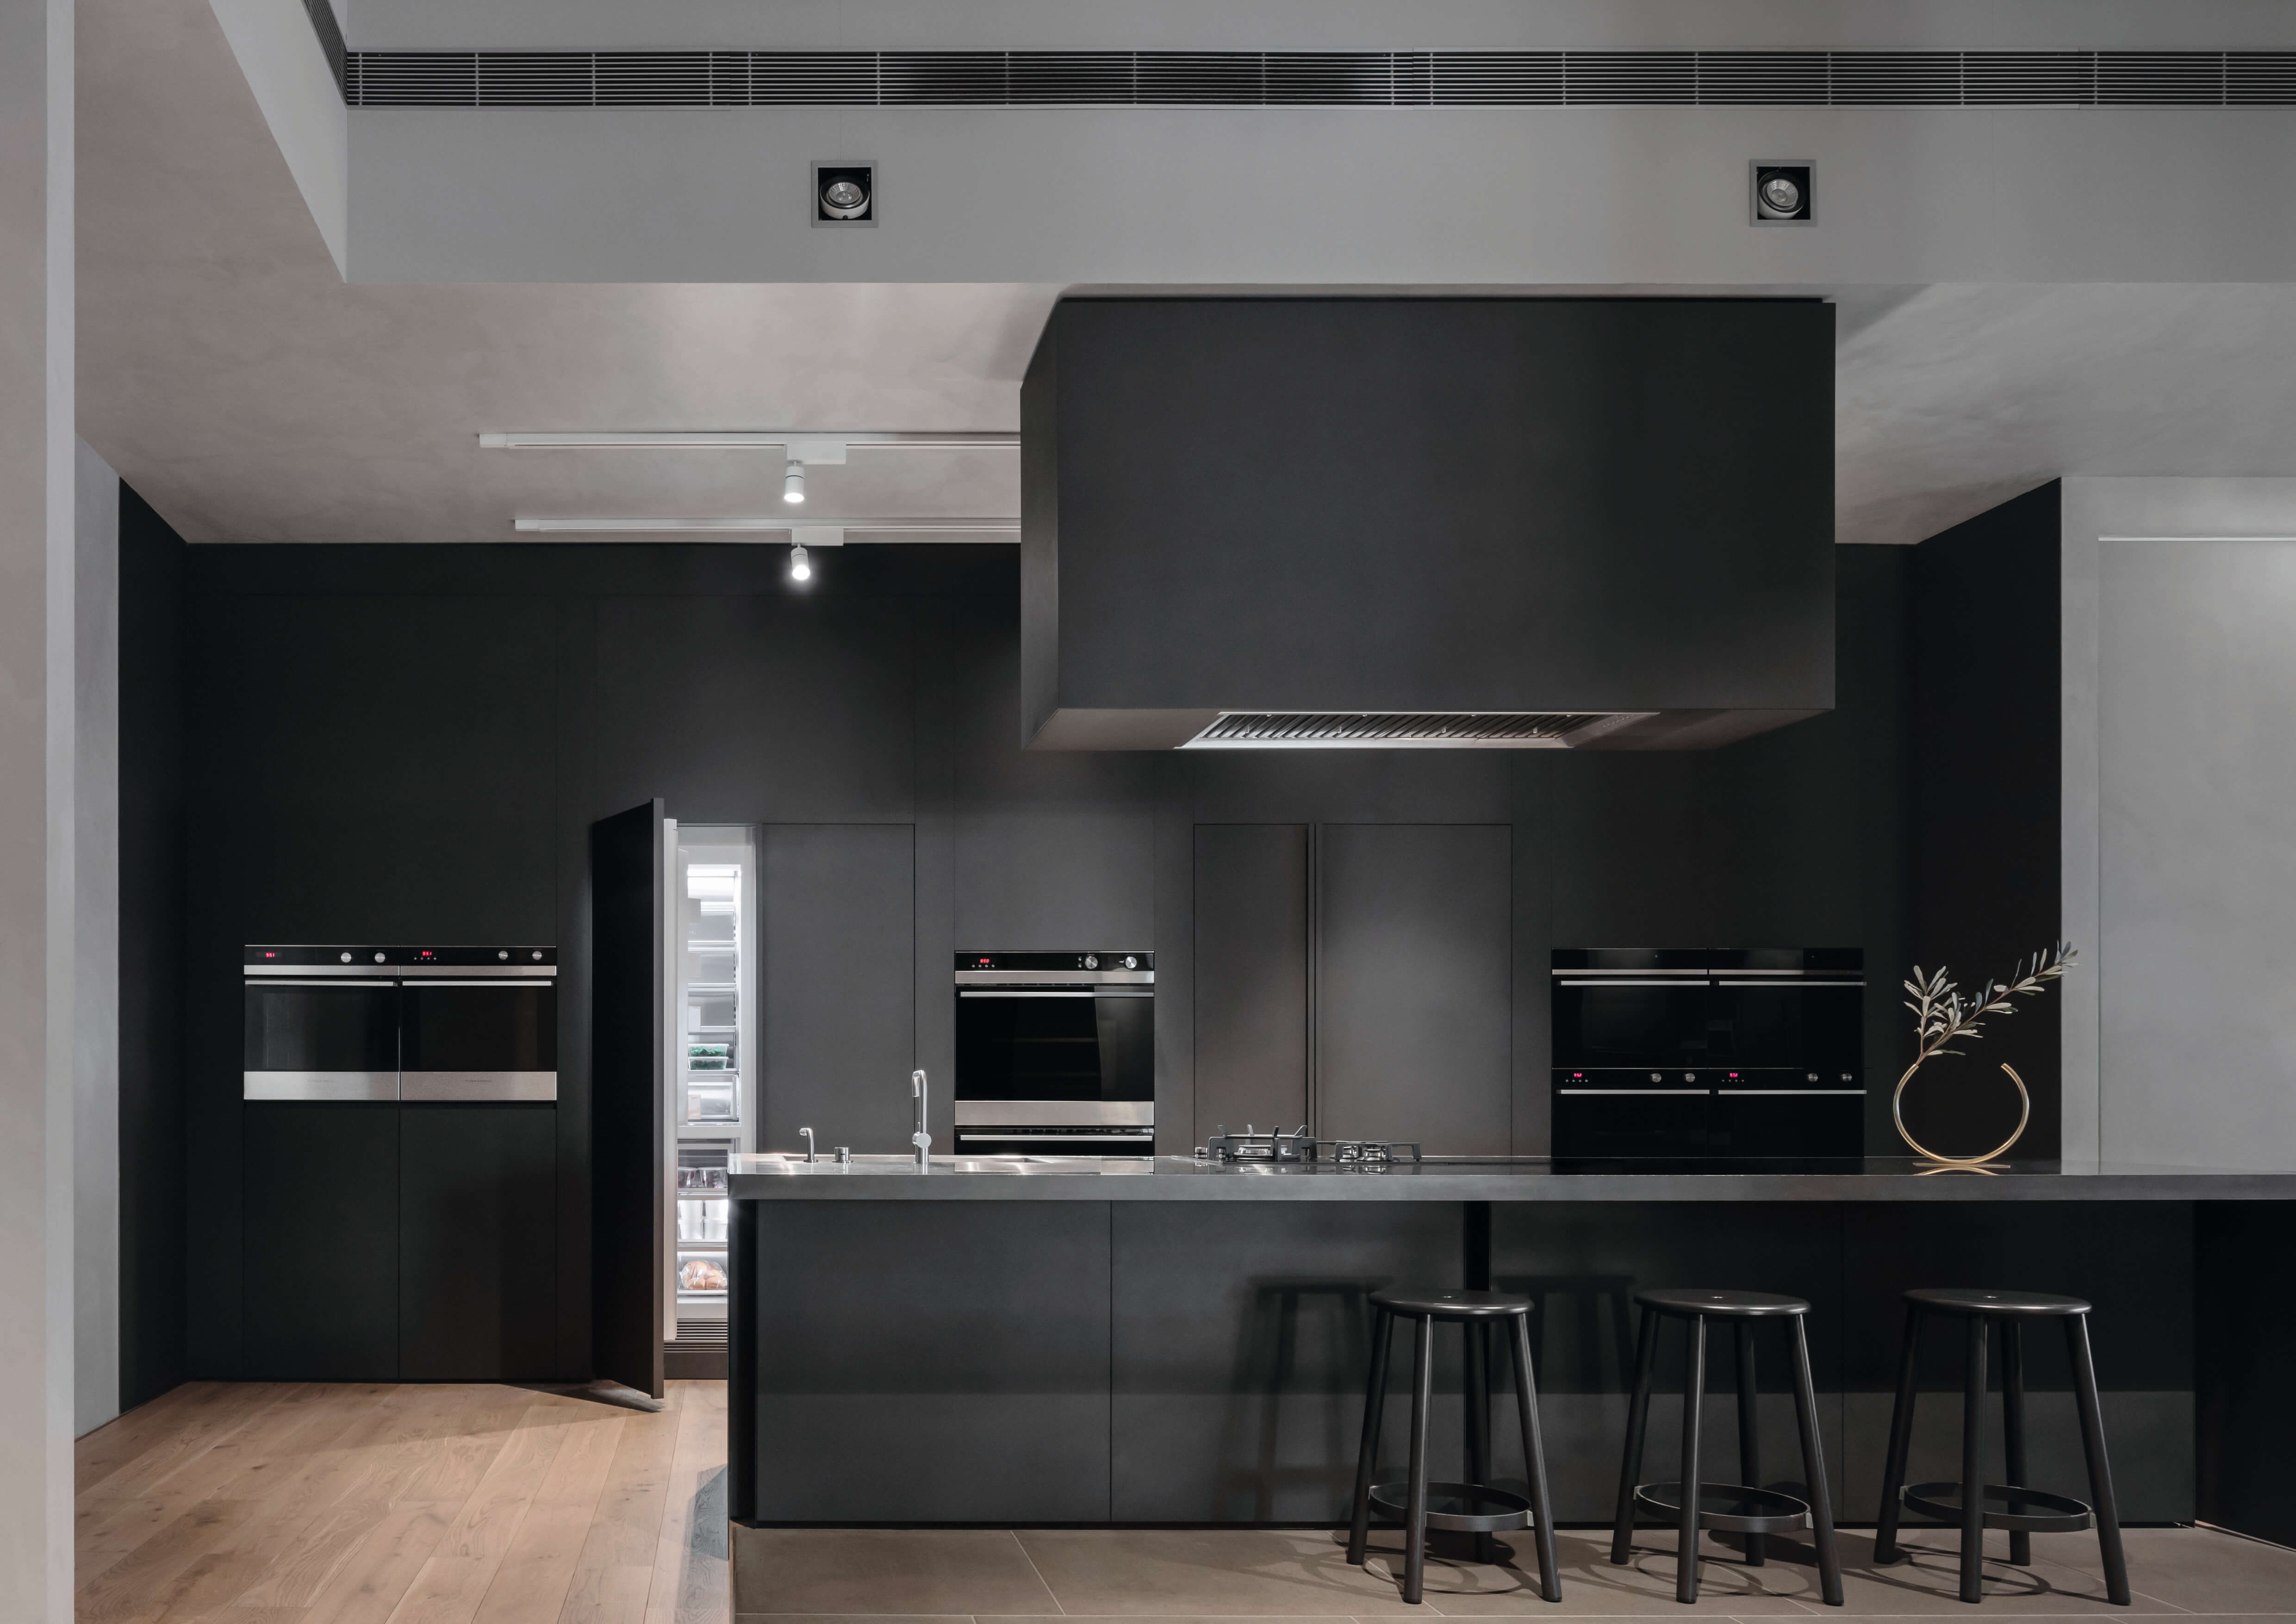 Gallery Of Column Refrigerators And Freezers By Fisher & Paykel Local Australian Design & Interiors Image 15